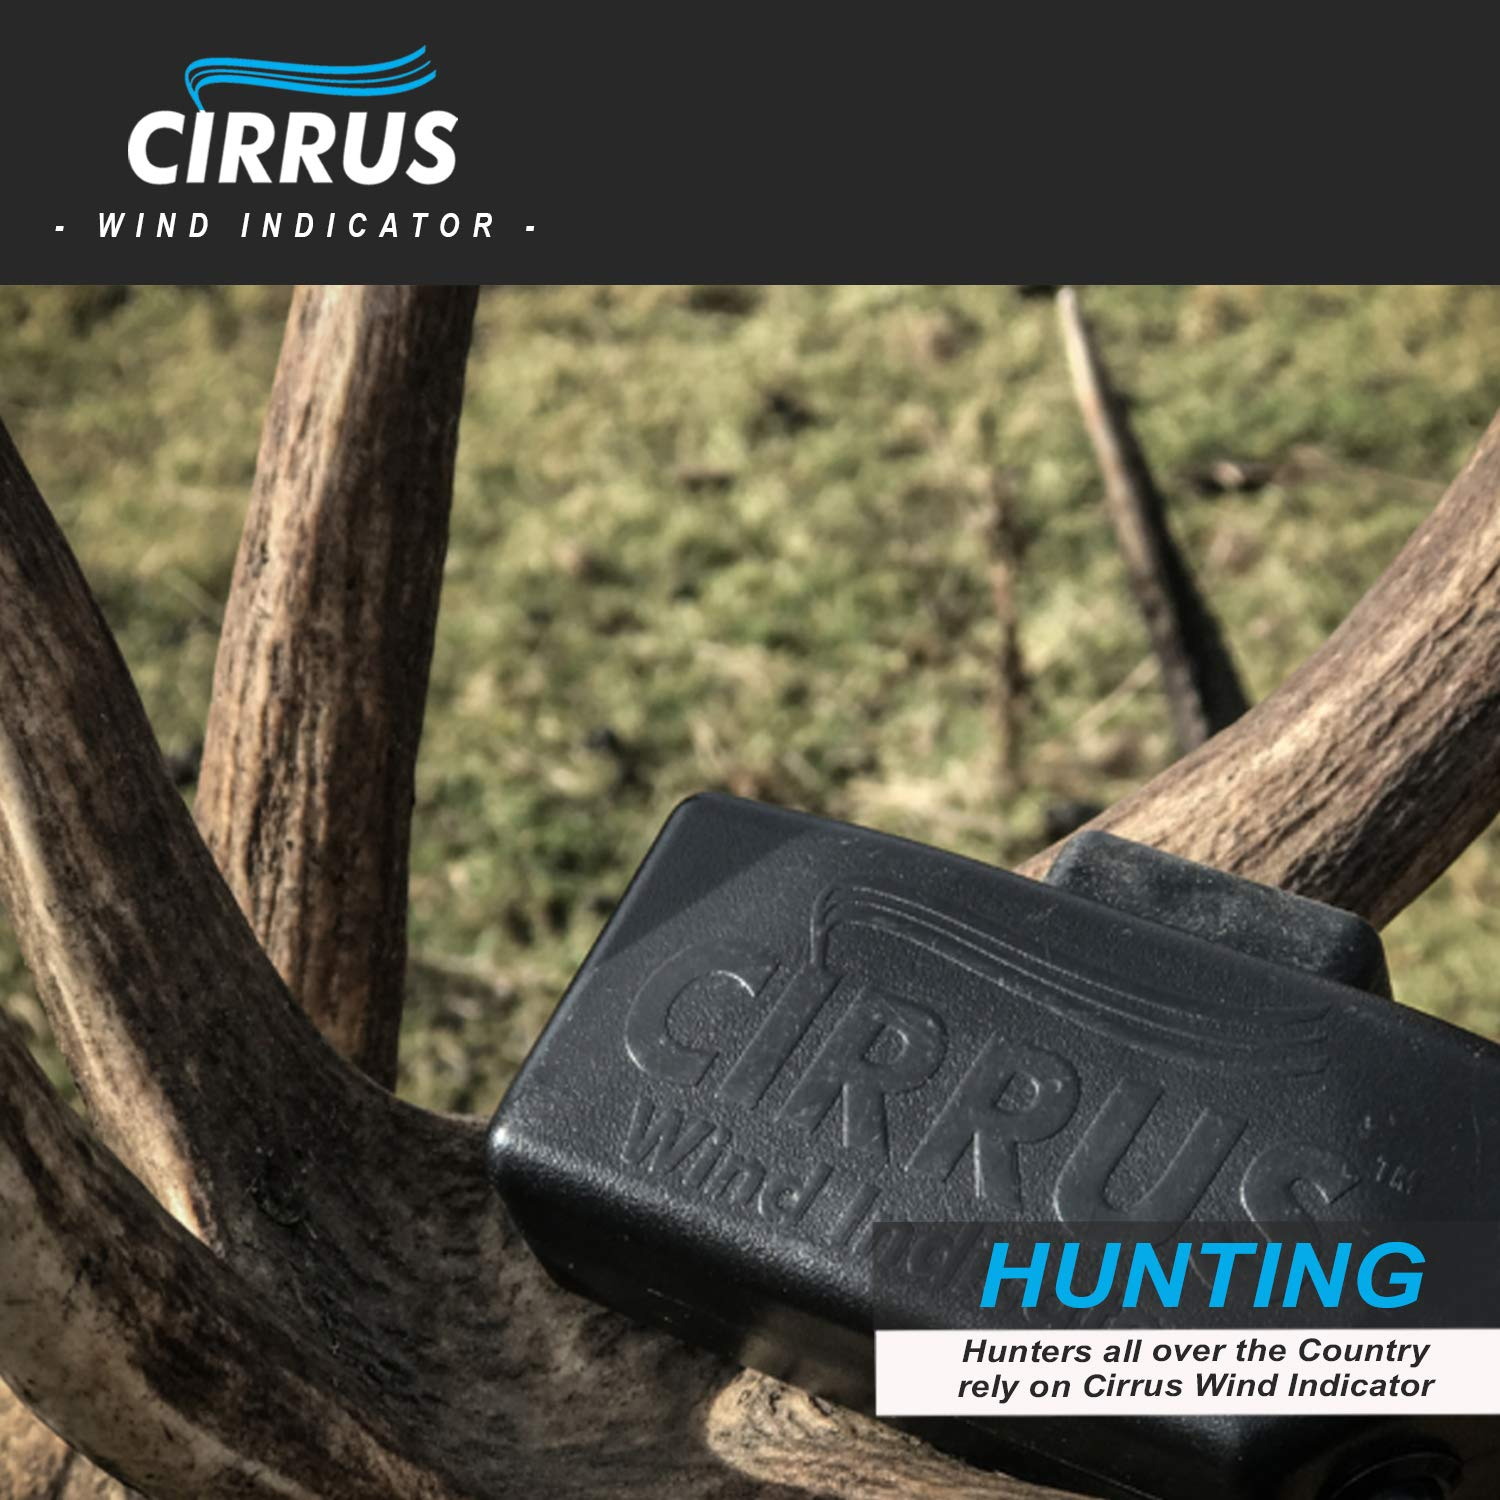 Cirrus Wind Indicator for Hunting - The Perfect Wind Checker Alternative to Messy Powder by Cirrus (Image #9)